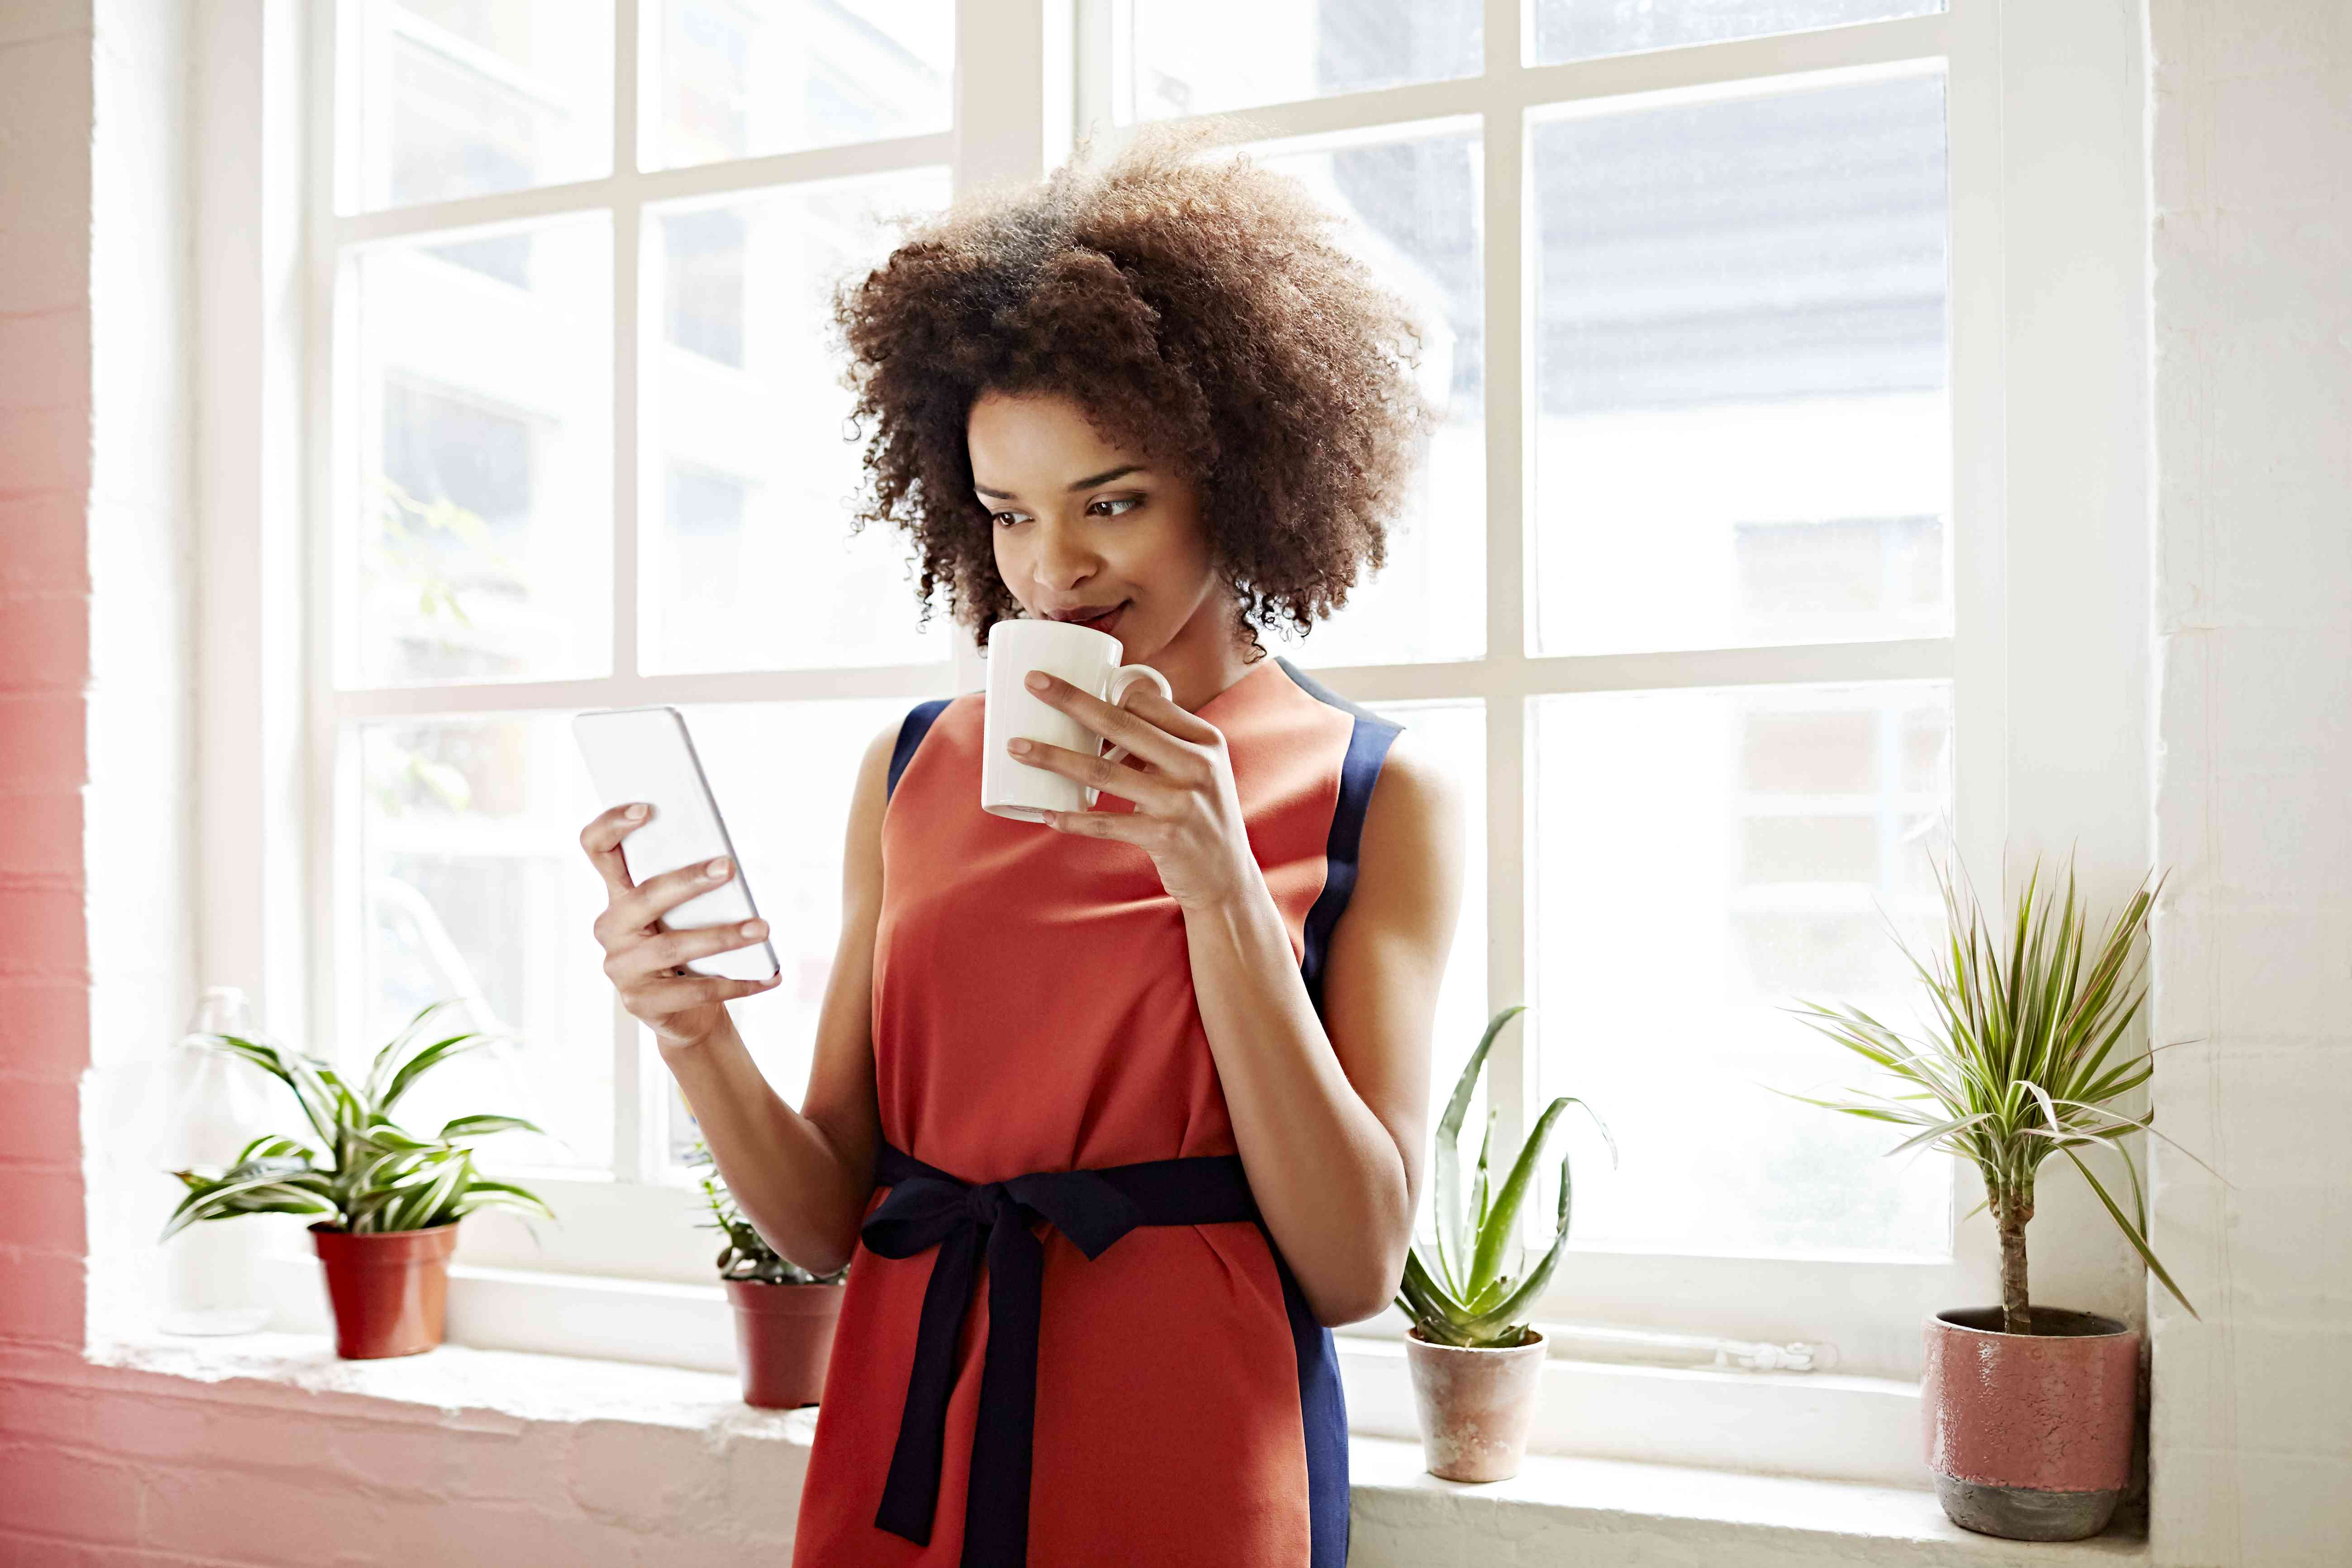 Woman drinking coffee and checking her phone